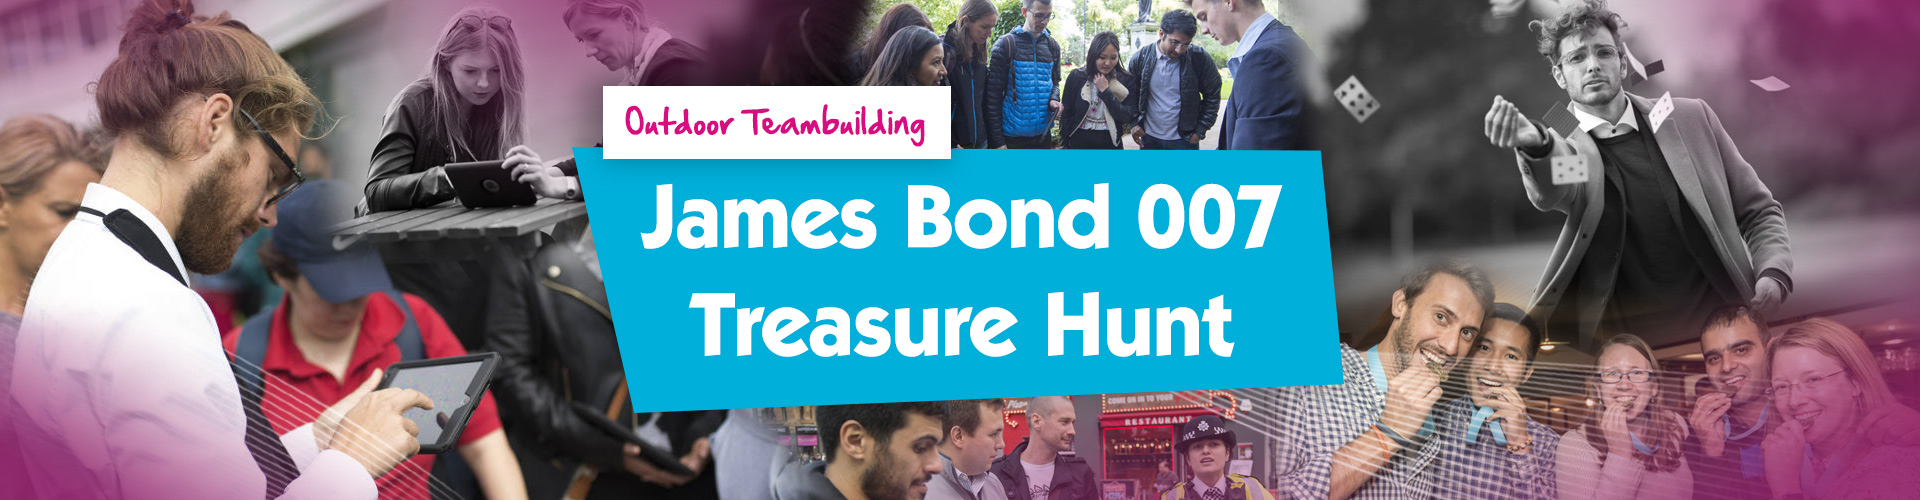 Teambuilding | James Bond 007 Treasure Hunt